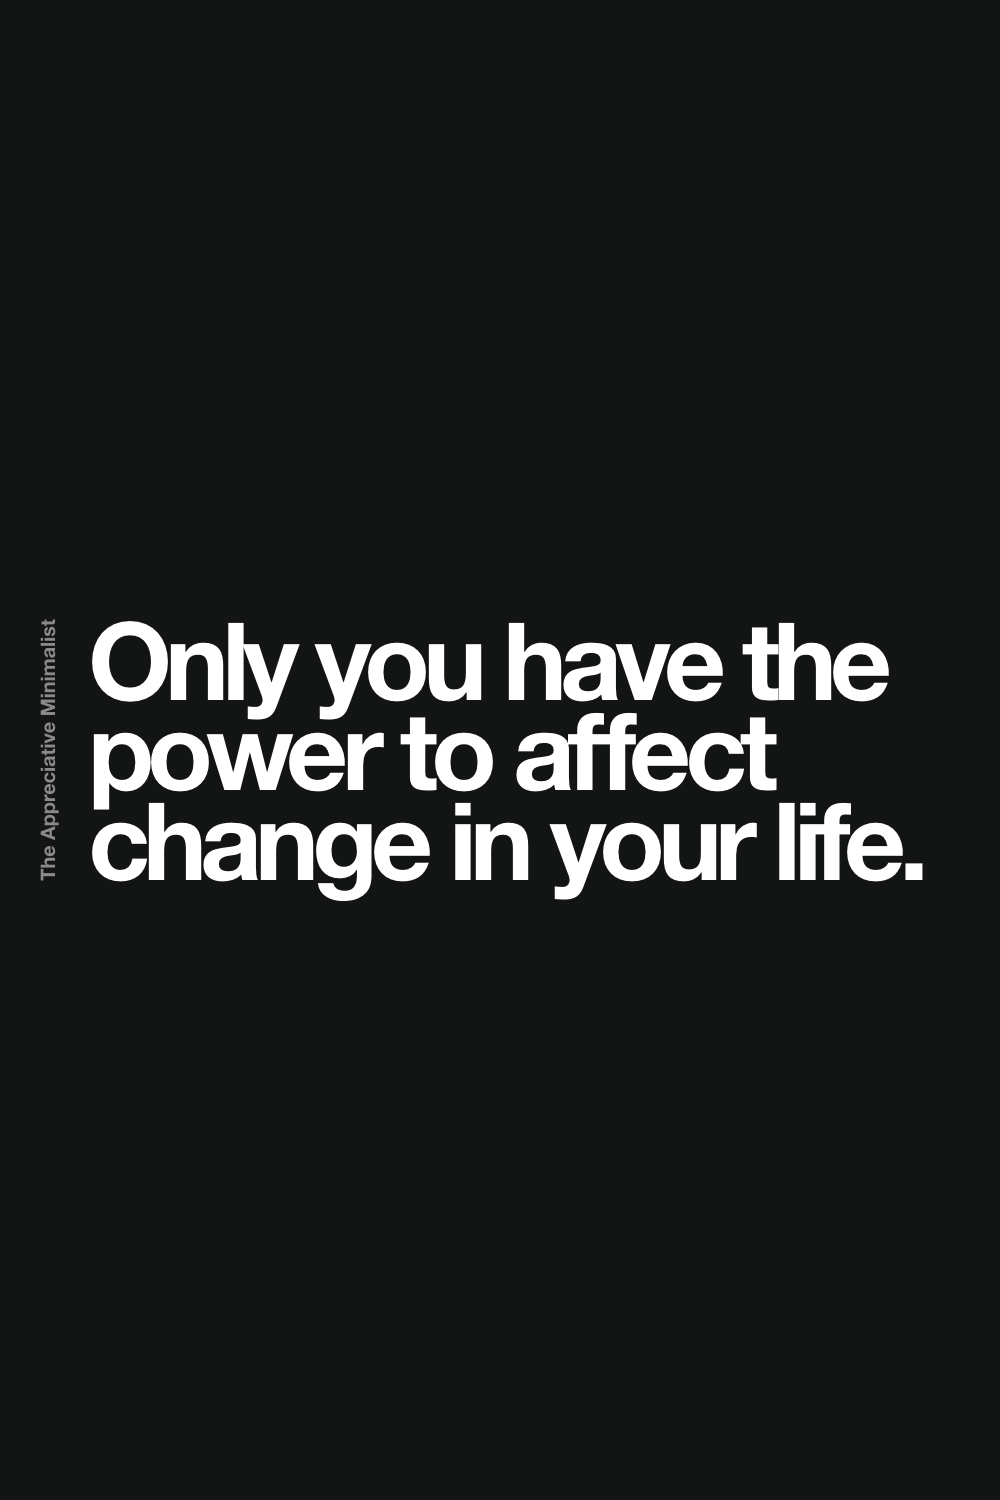 Only you have the power to affect change in your life.